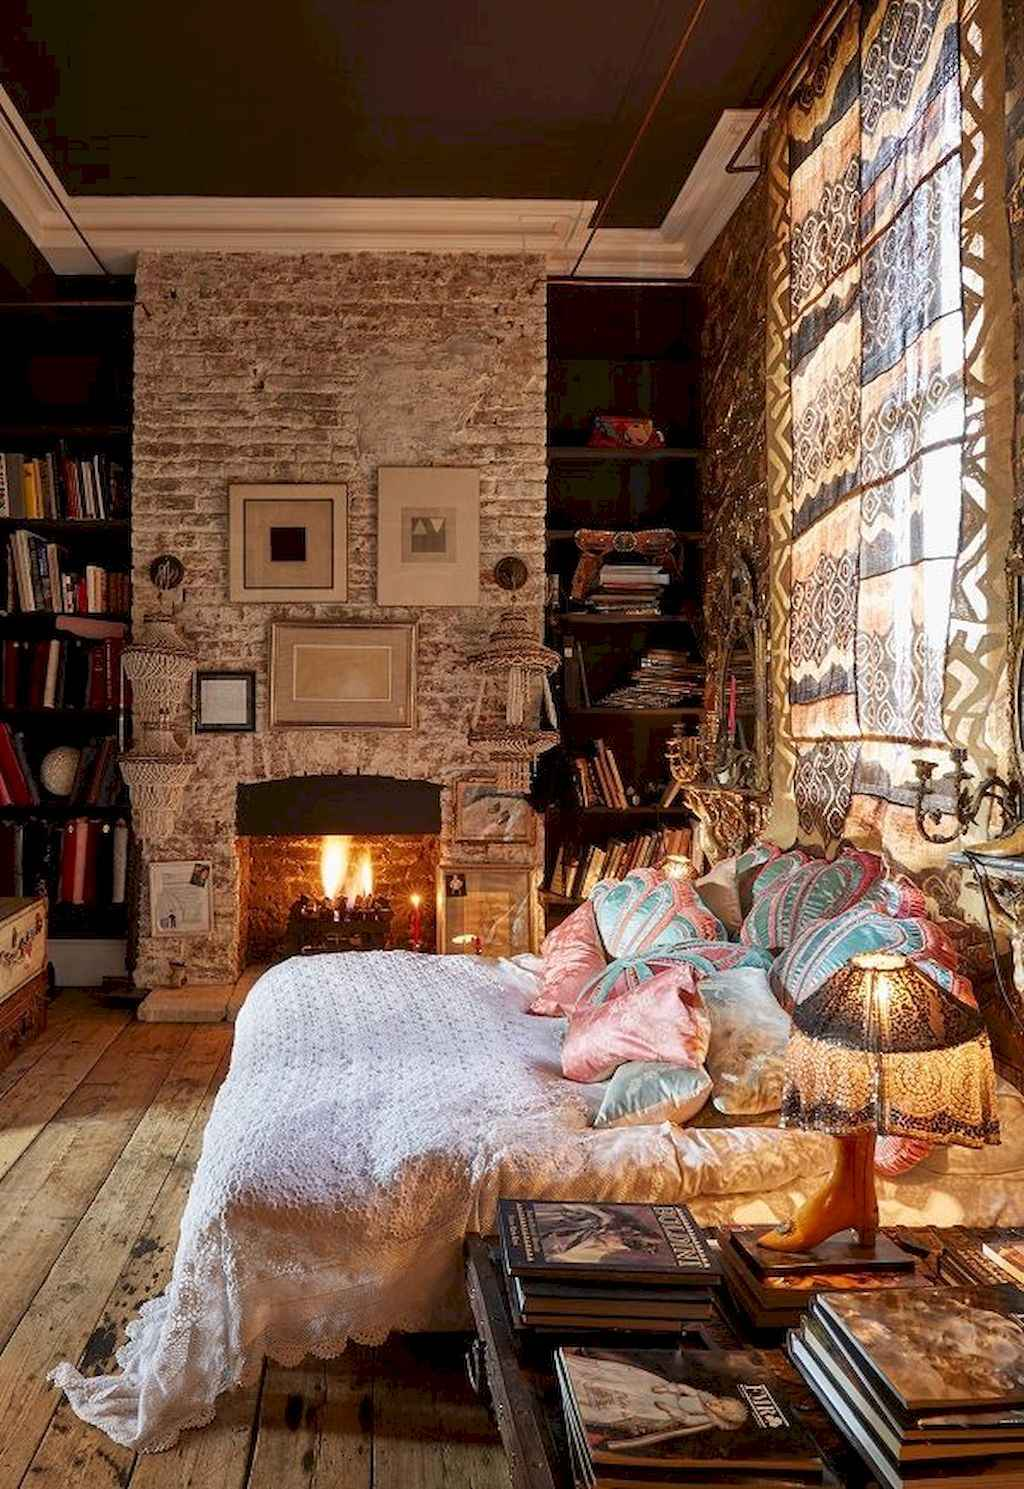 Cozy apartment decorating ideas on a budget (92)